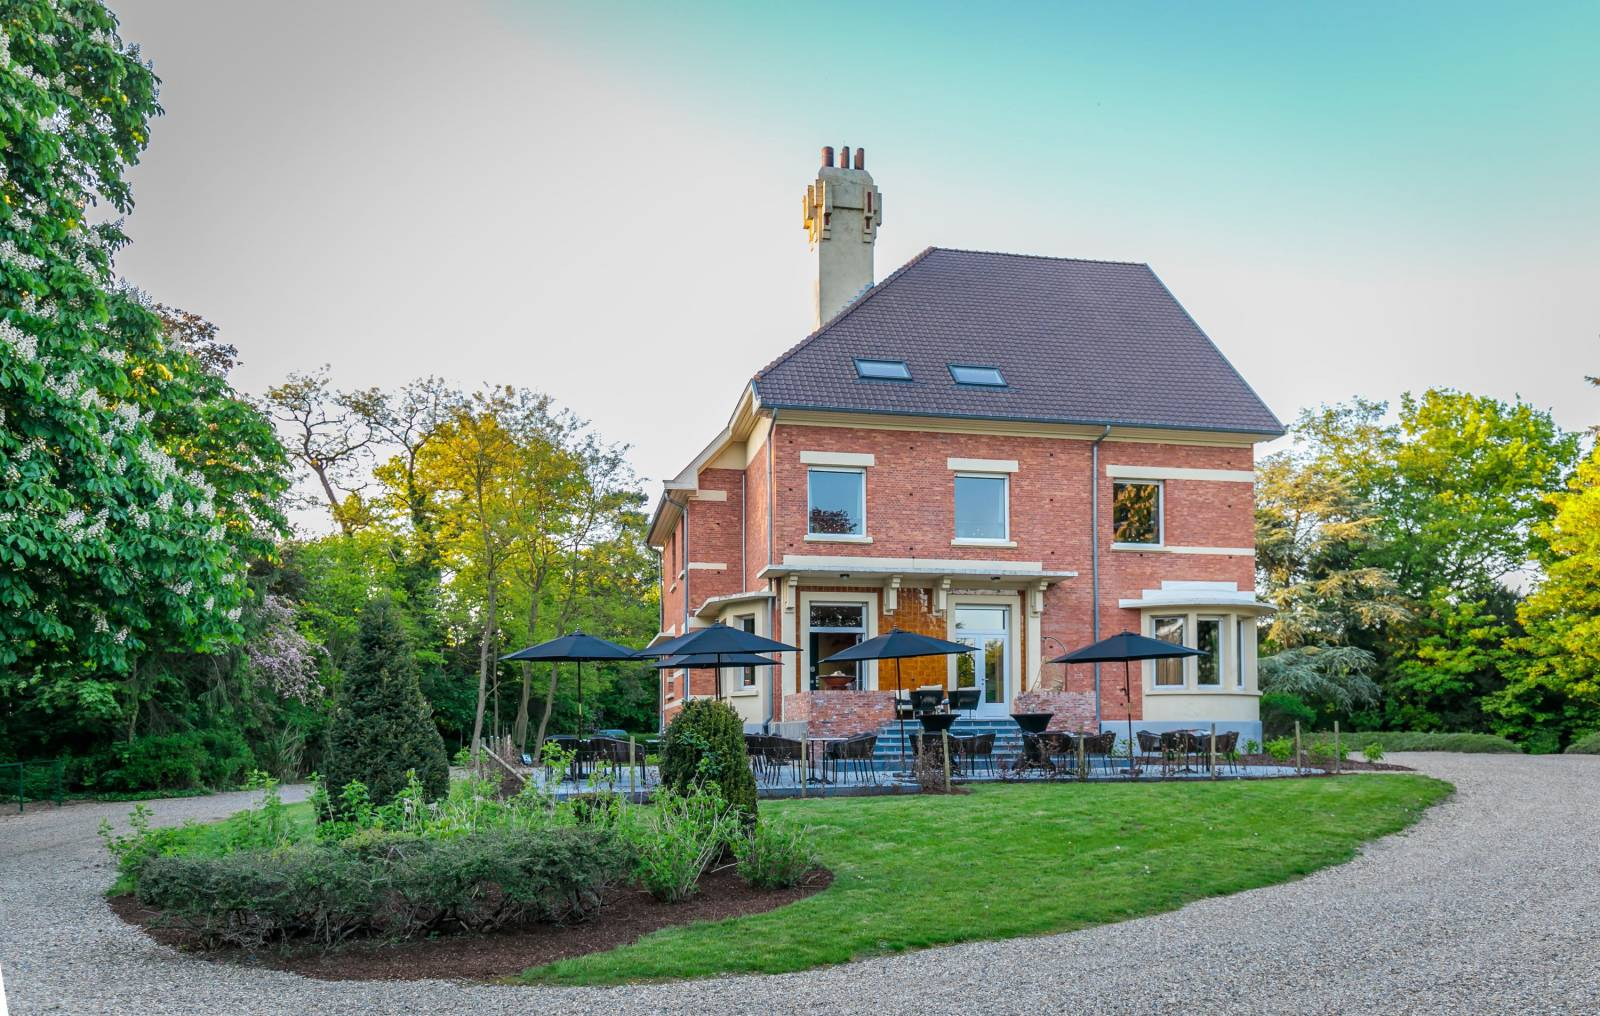 Villa Zwart Goud - Feestzaal - House of Weddings - 13